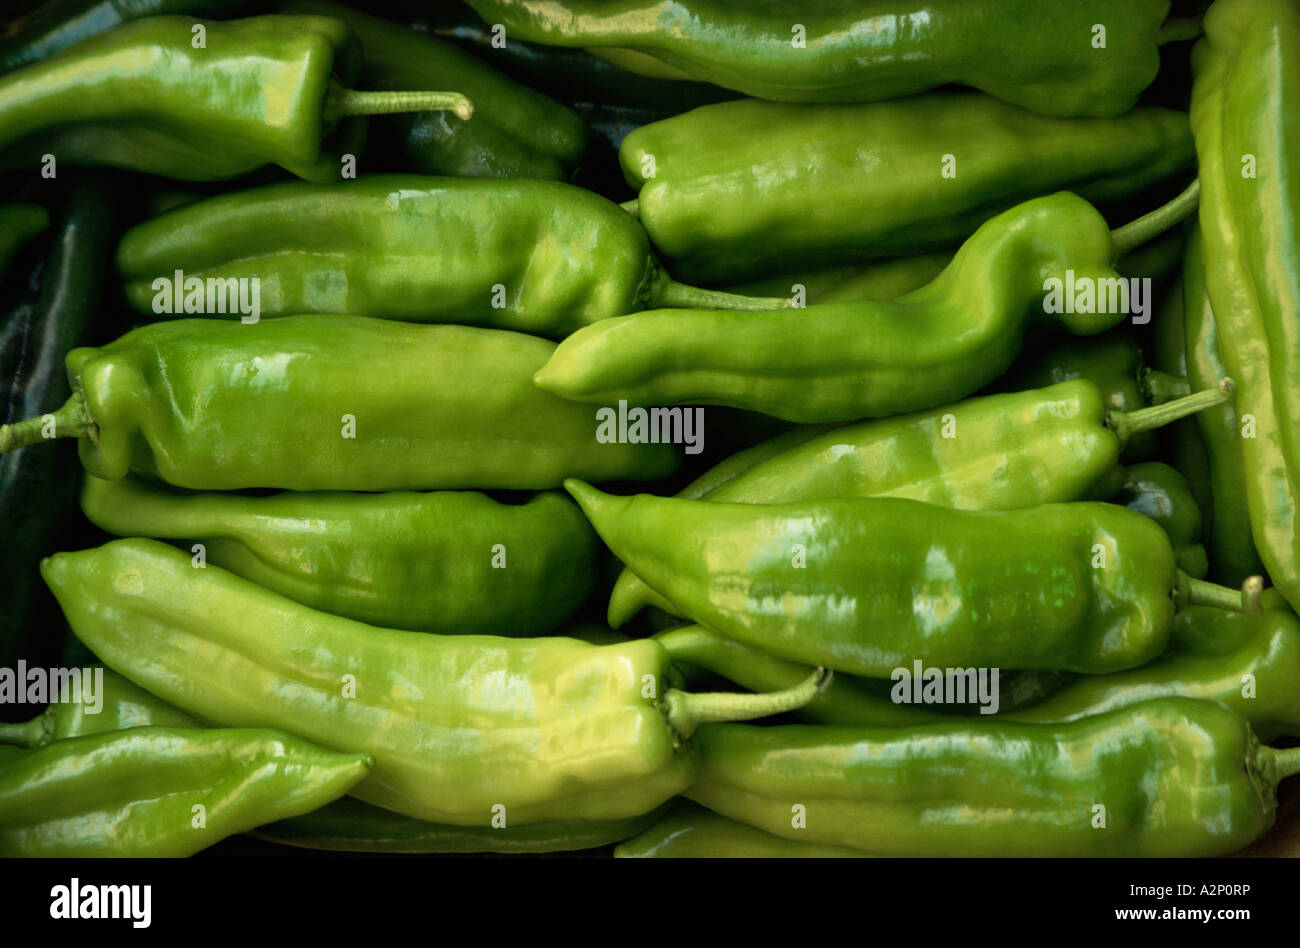 Green chilli peppers - Stock Image